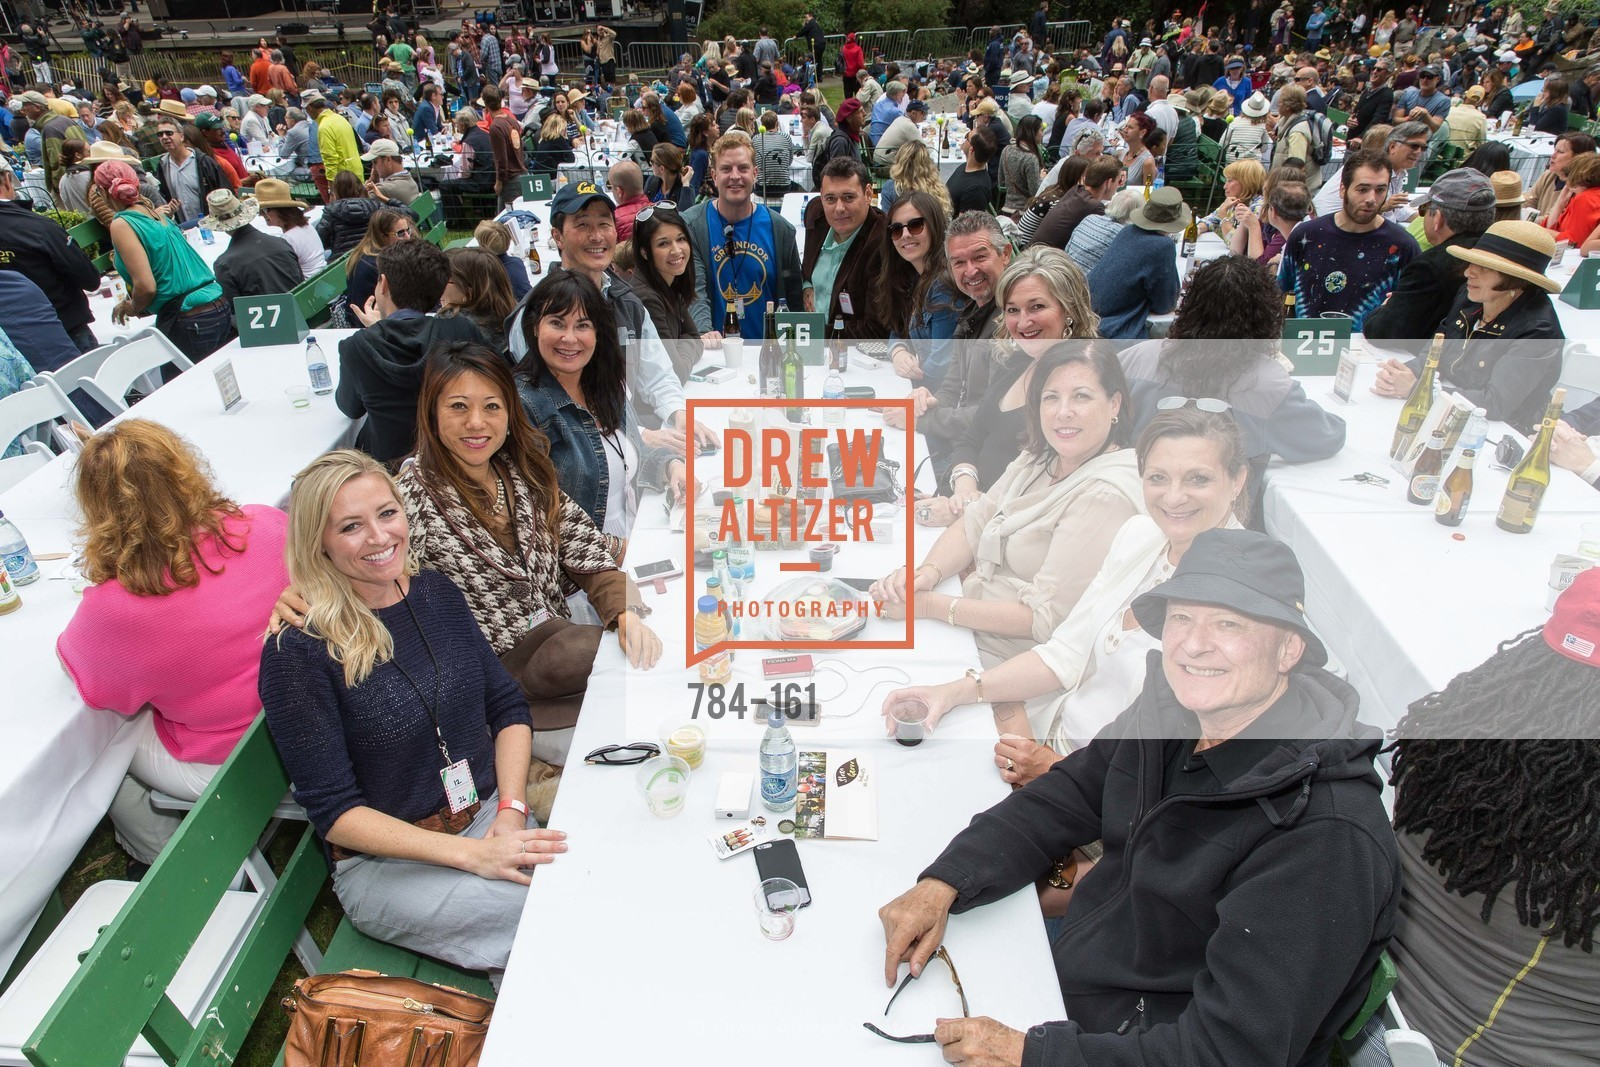 Extras, THE BIG PICNIC Kicking off  2015 Stern Grove Season, June 14th, 2015, Photo,Drew Altizer, Drew Altizer Photography, full-service agency, private events, San Francisco photographer, photographer california